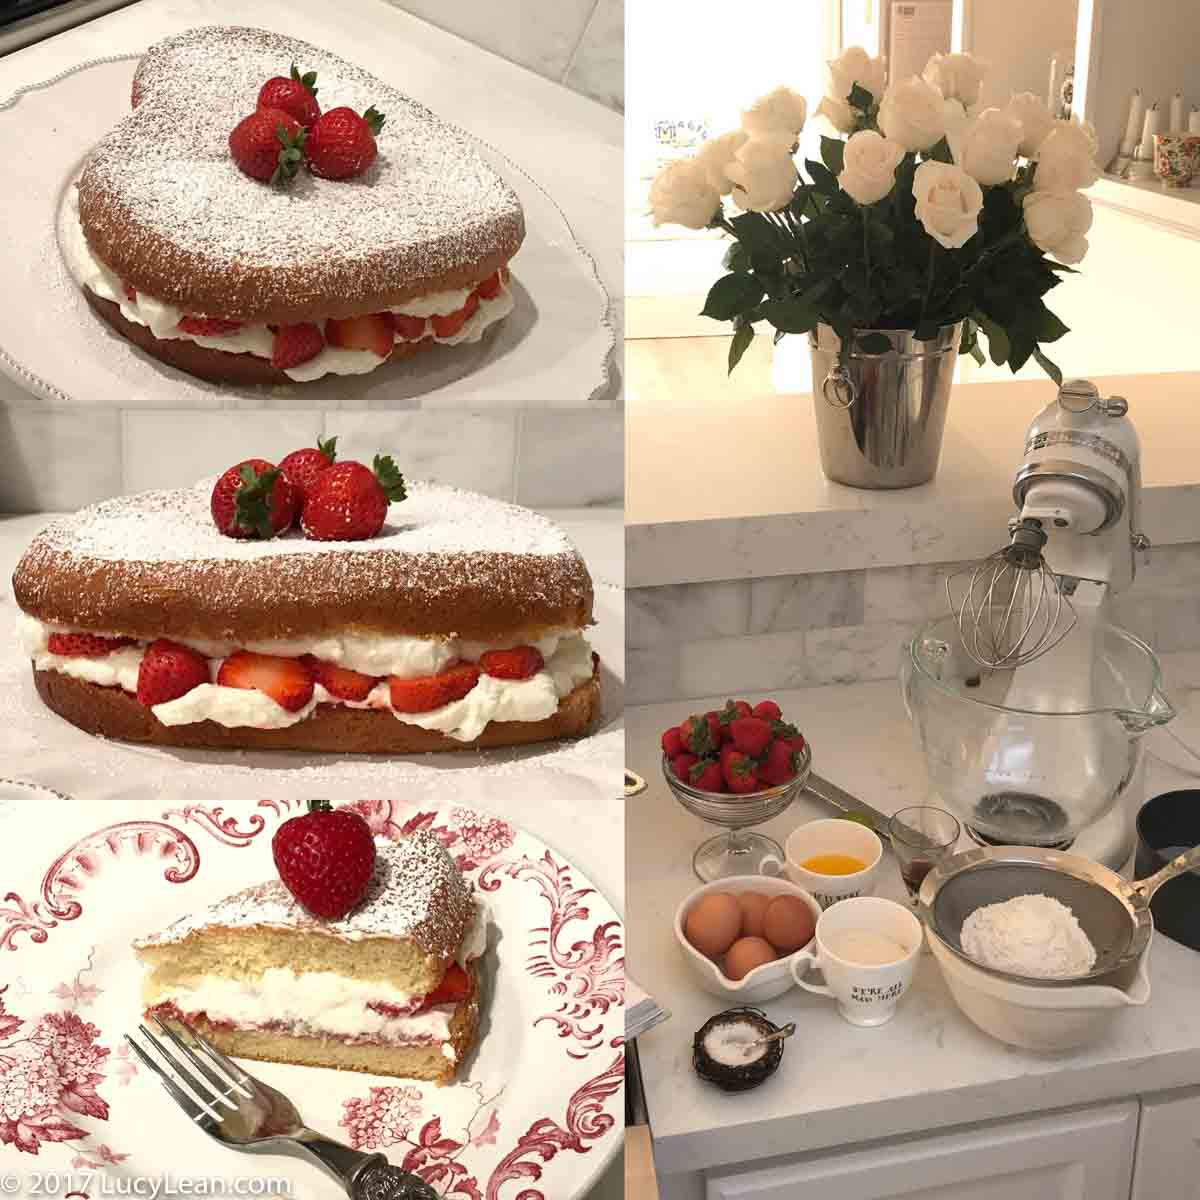 How To Decorate A Sponge Cake Using Cream And Strawberries